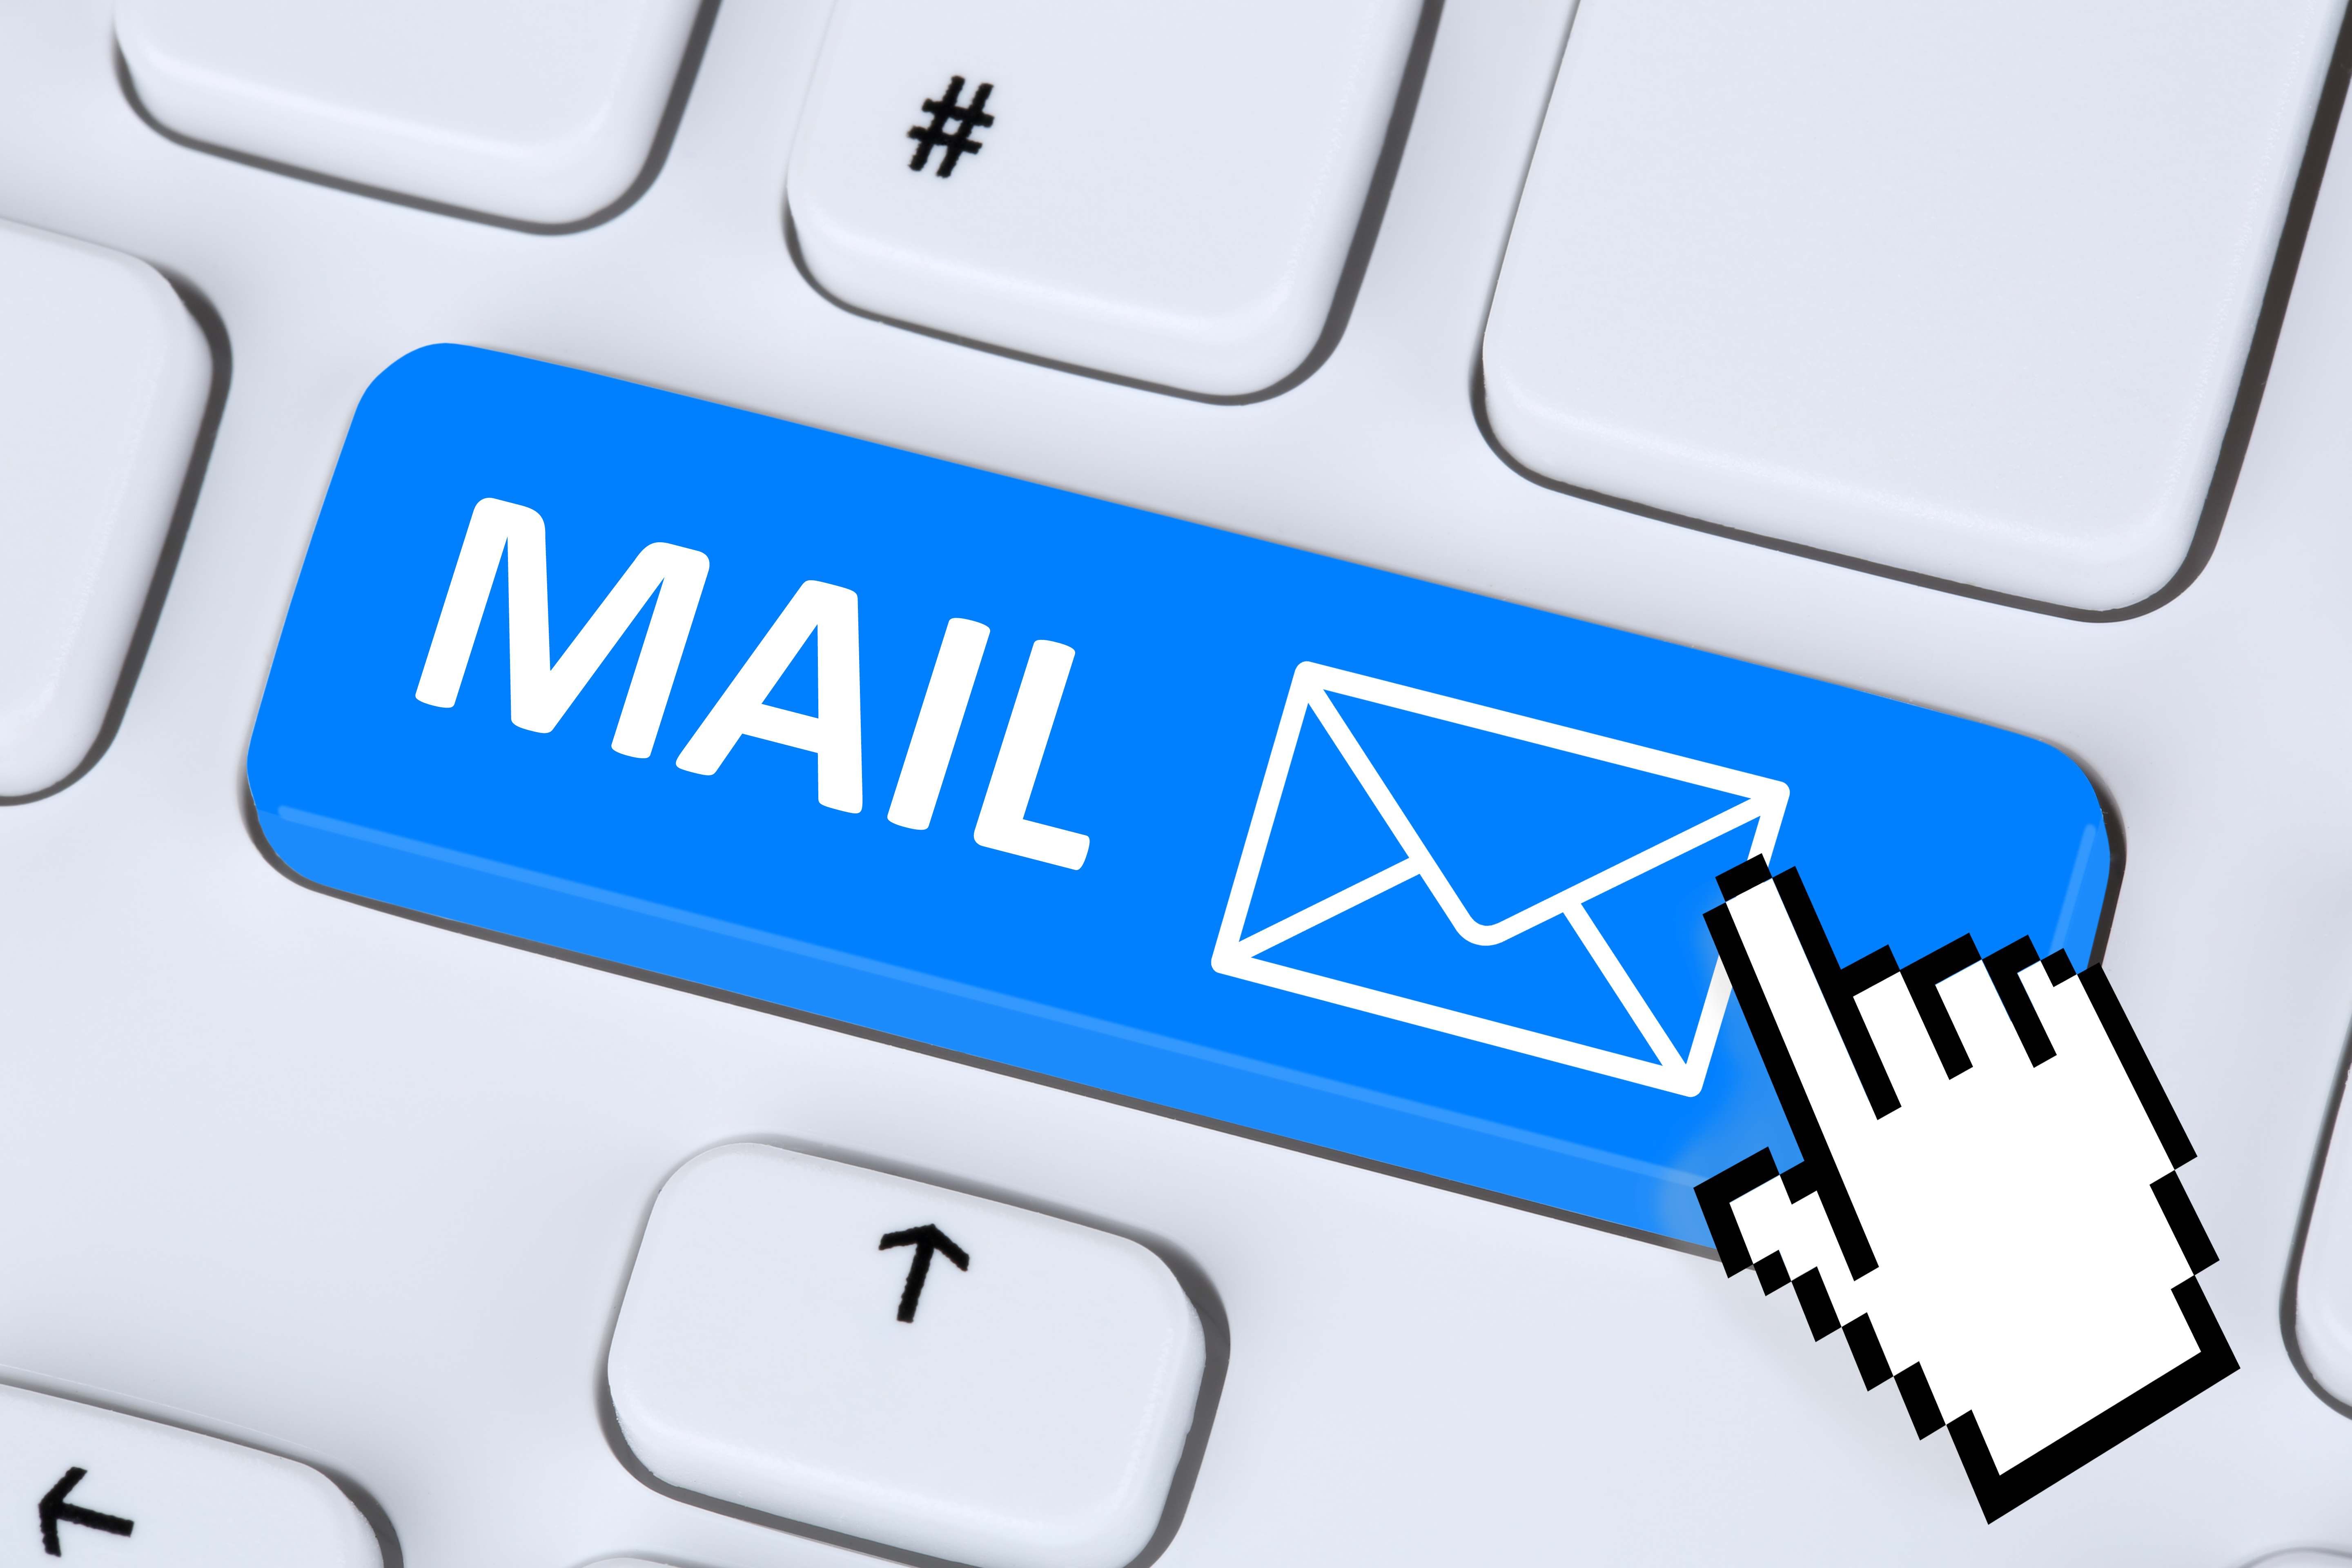 Gmail has many features that enhance your email experience